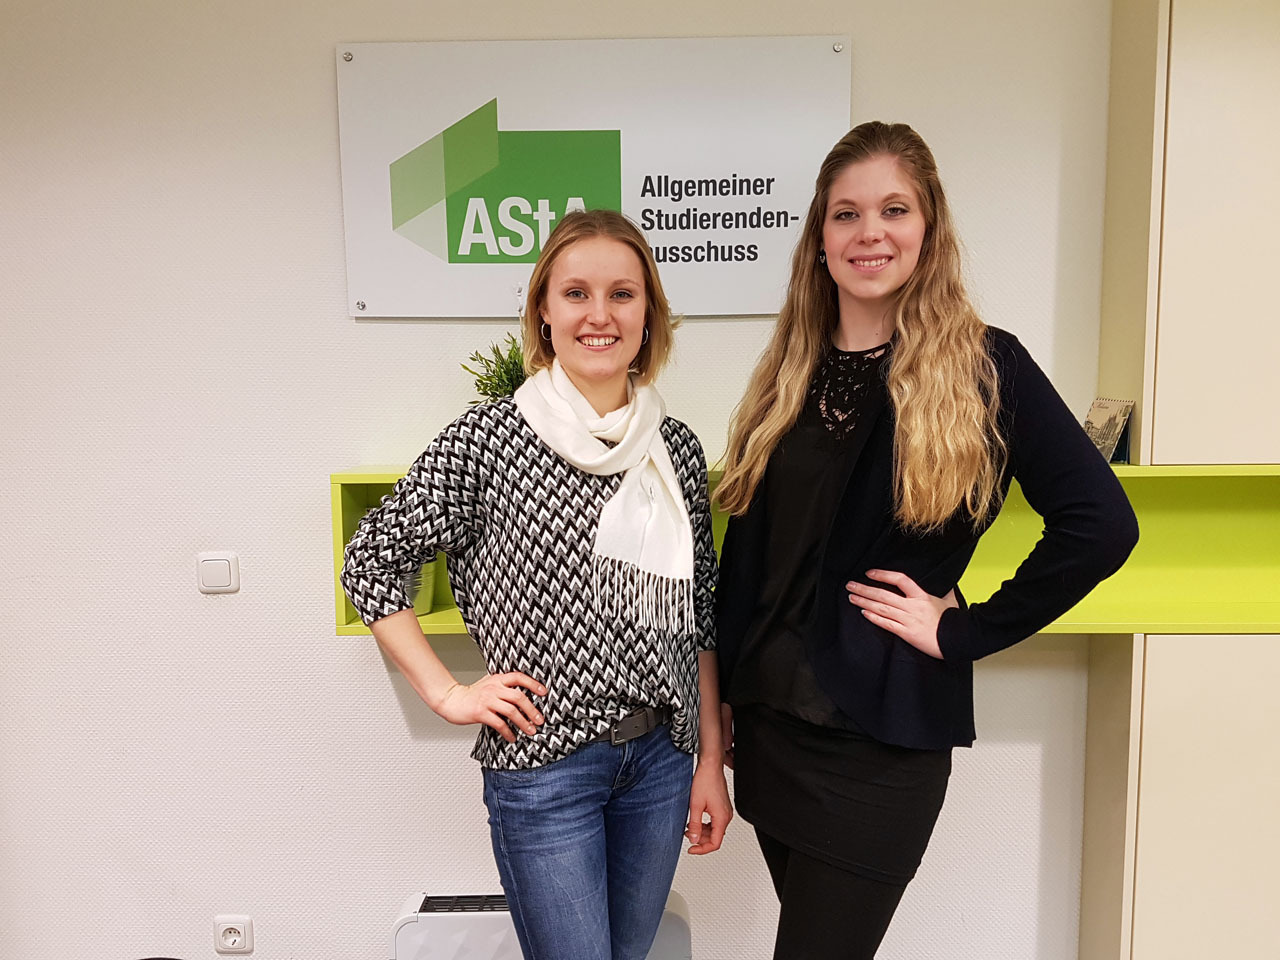 The two Representatives for Disabled and Chronically Ill Students, Eva Malecha and Svenja Blömeke